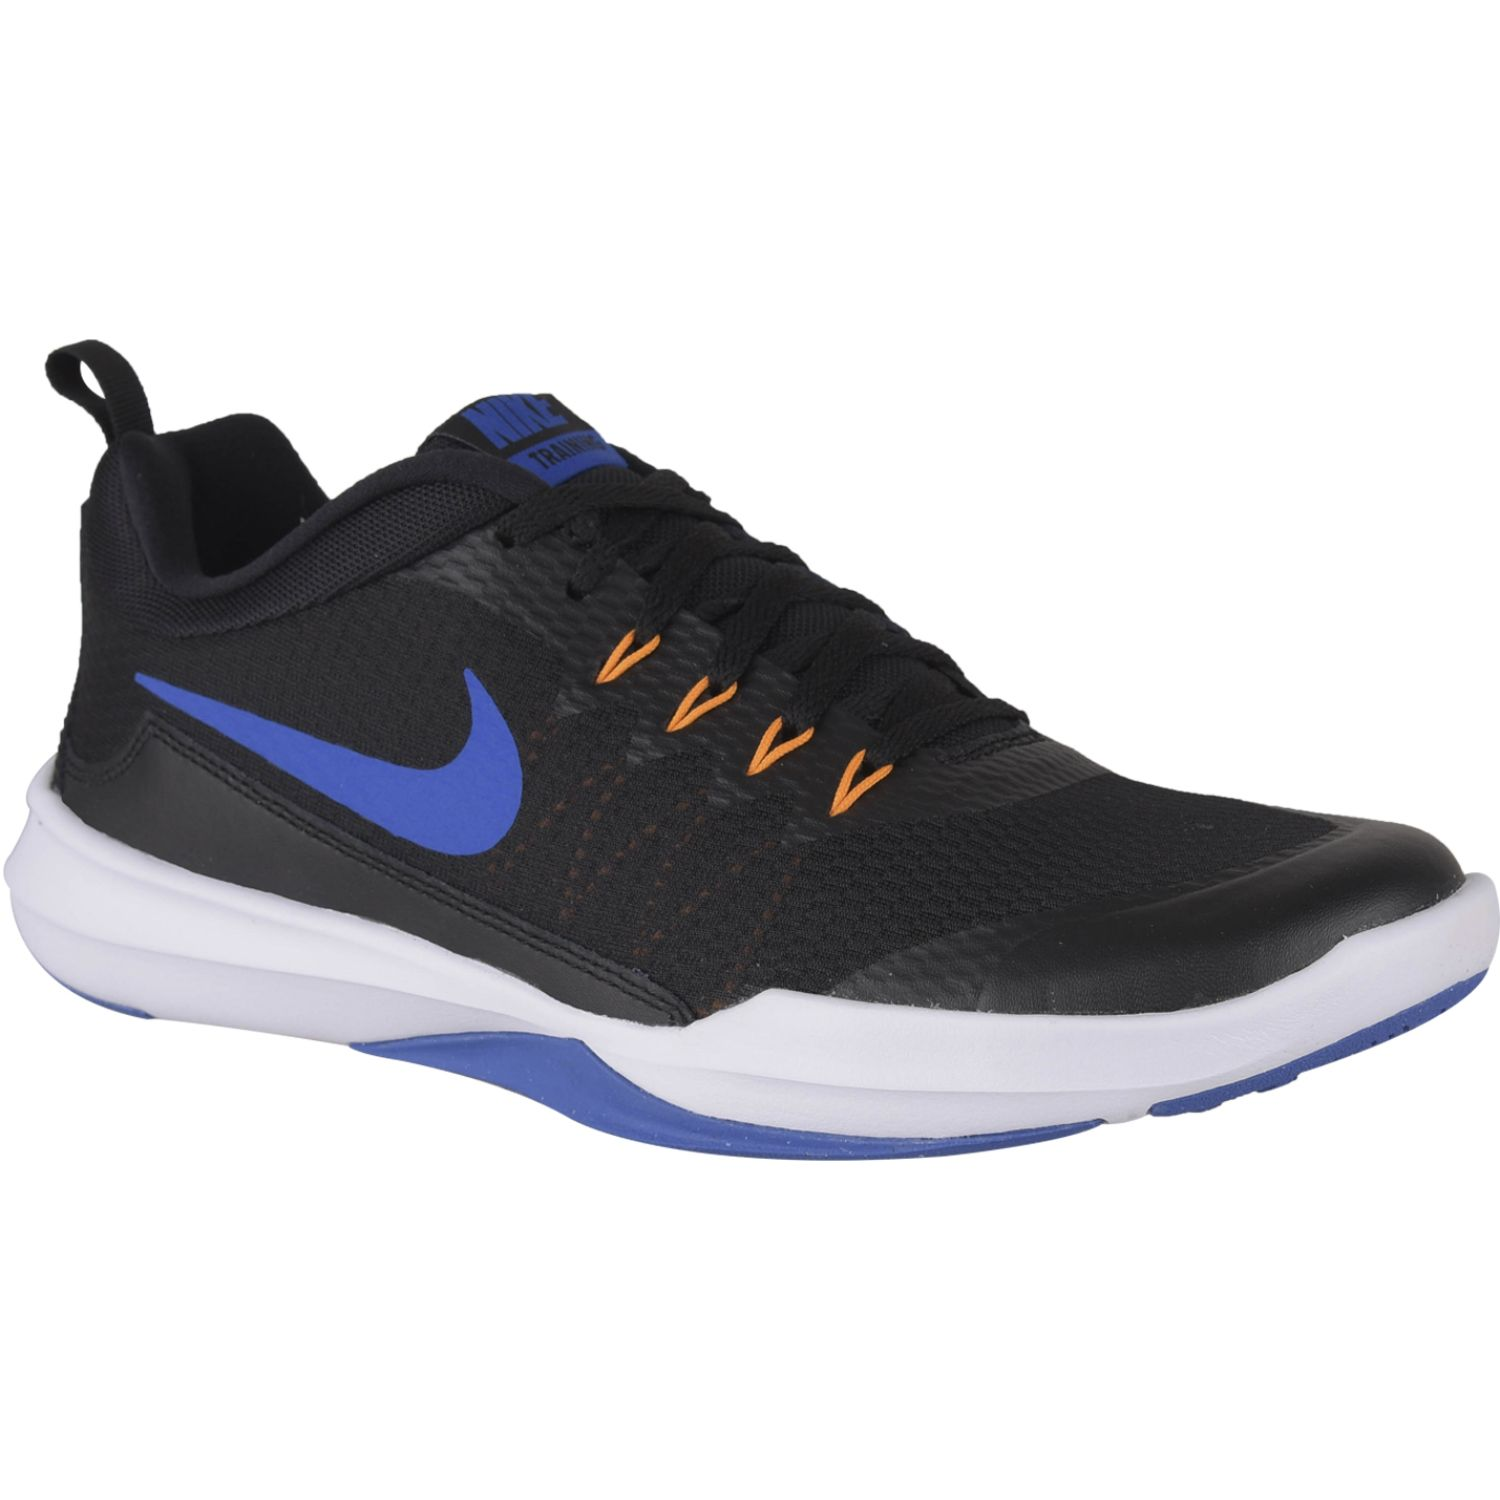 Nike nike legend trainer Negro / azul Hombres